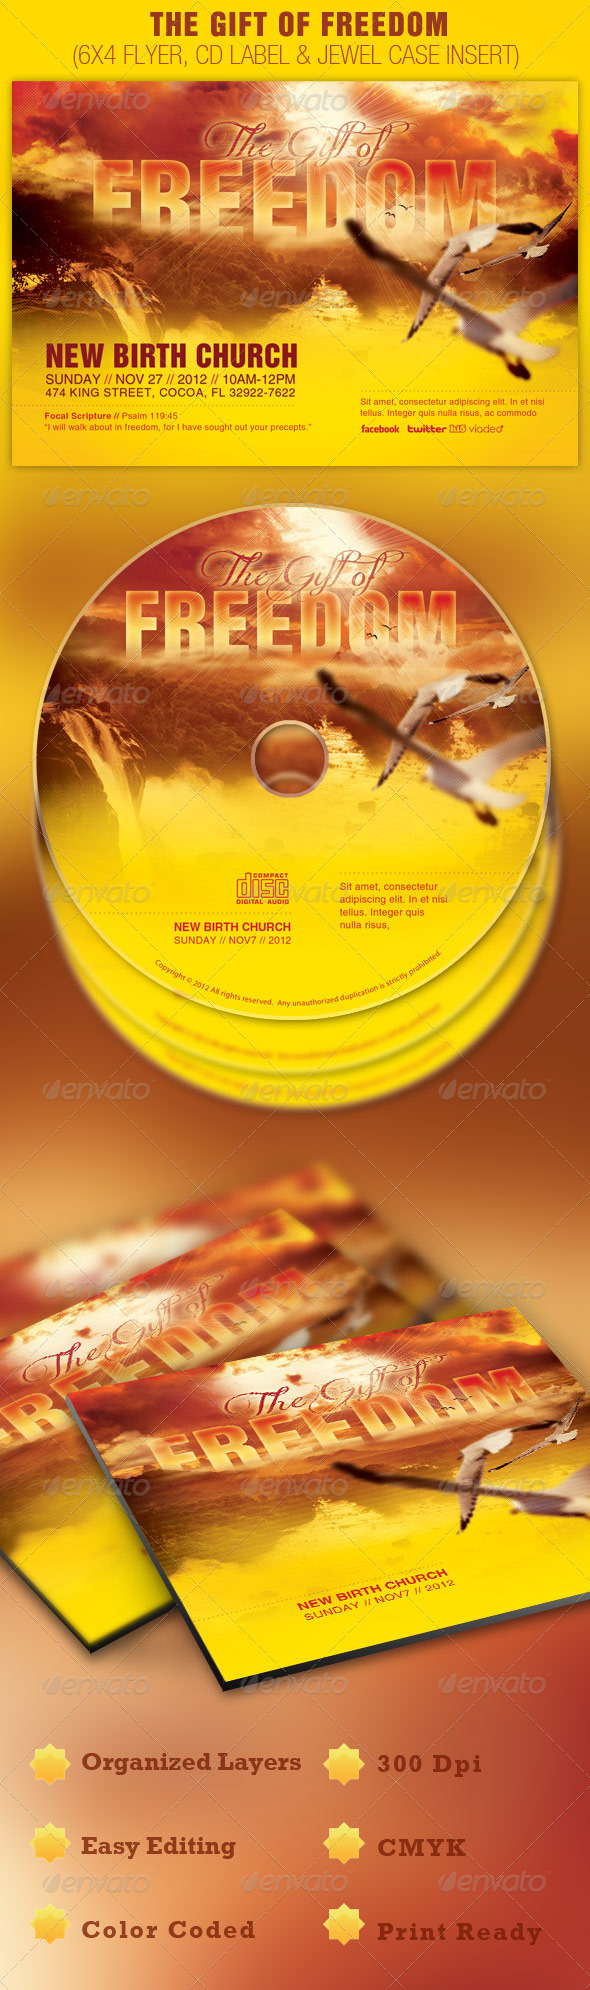 GraphicRiver The Gift of Freedom Flyer and CD Template 678111